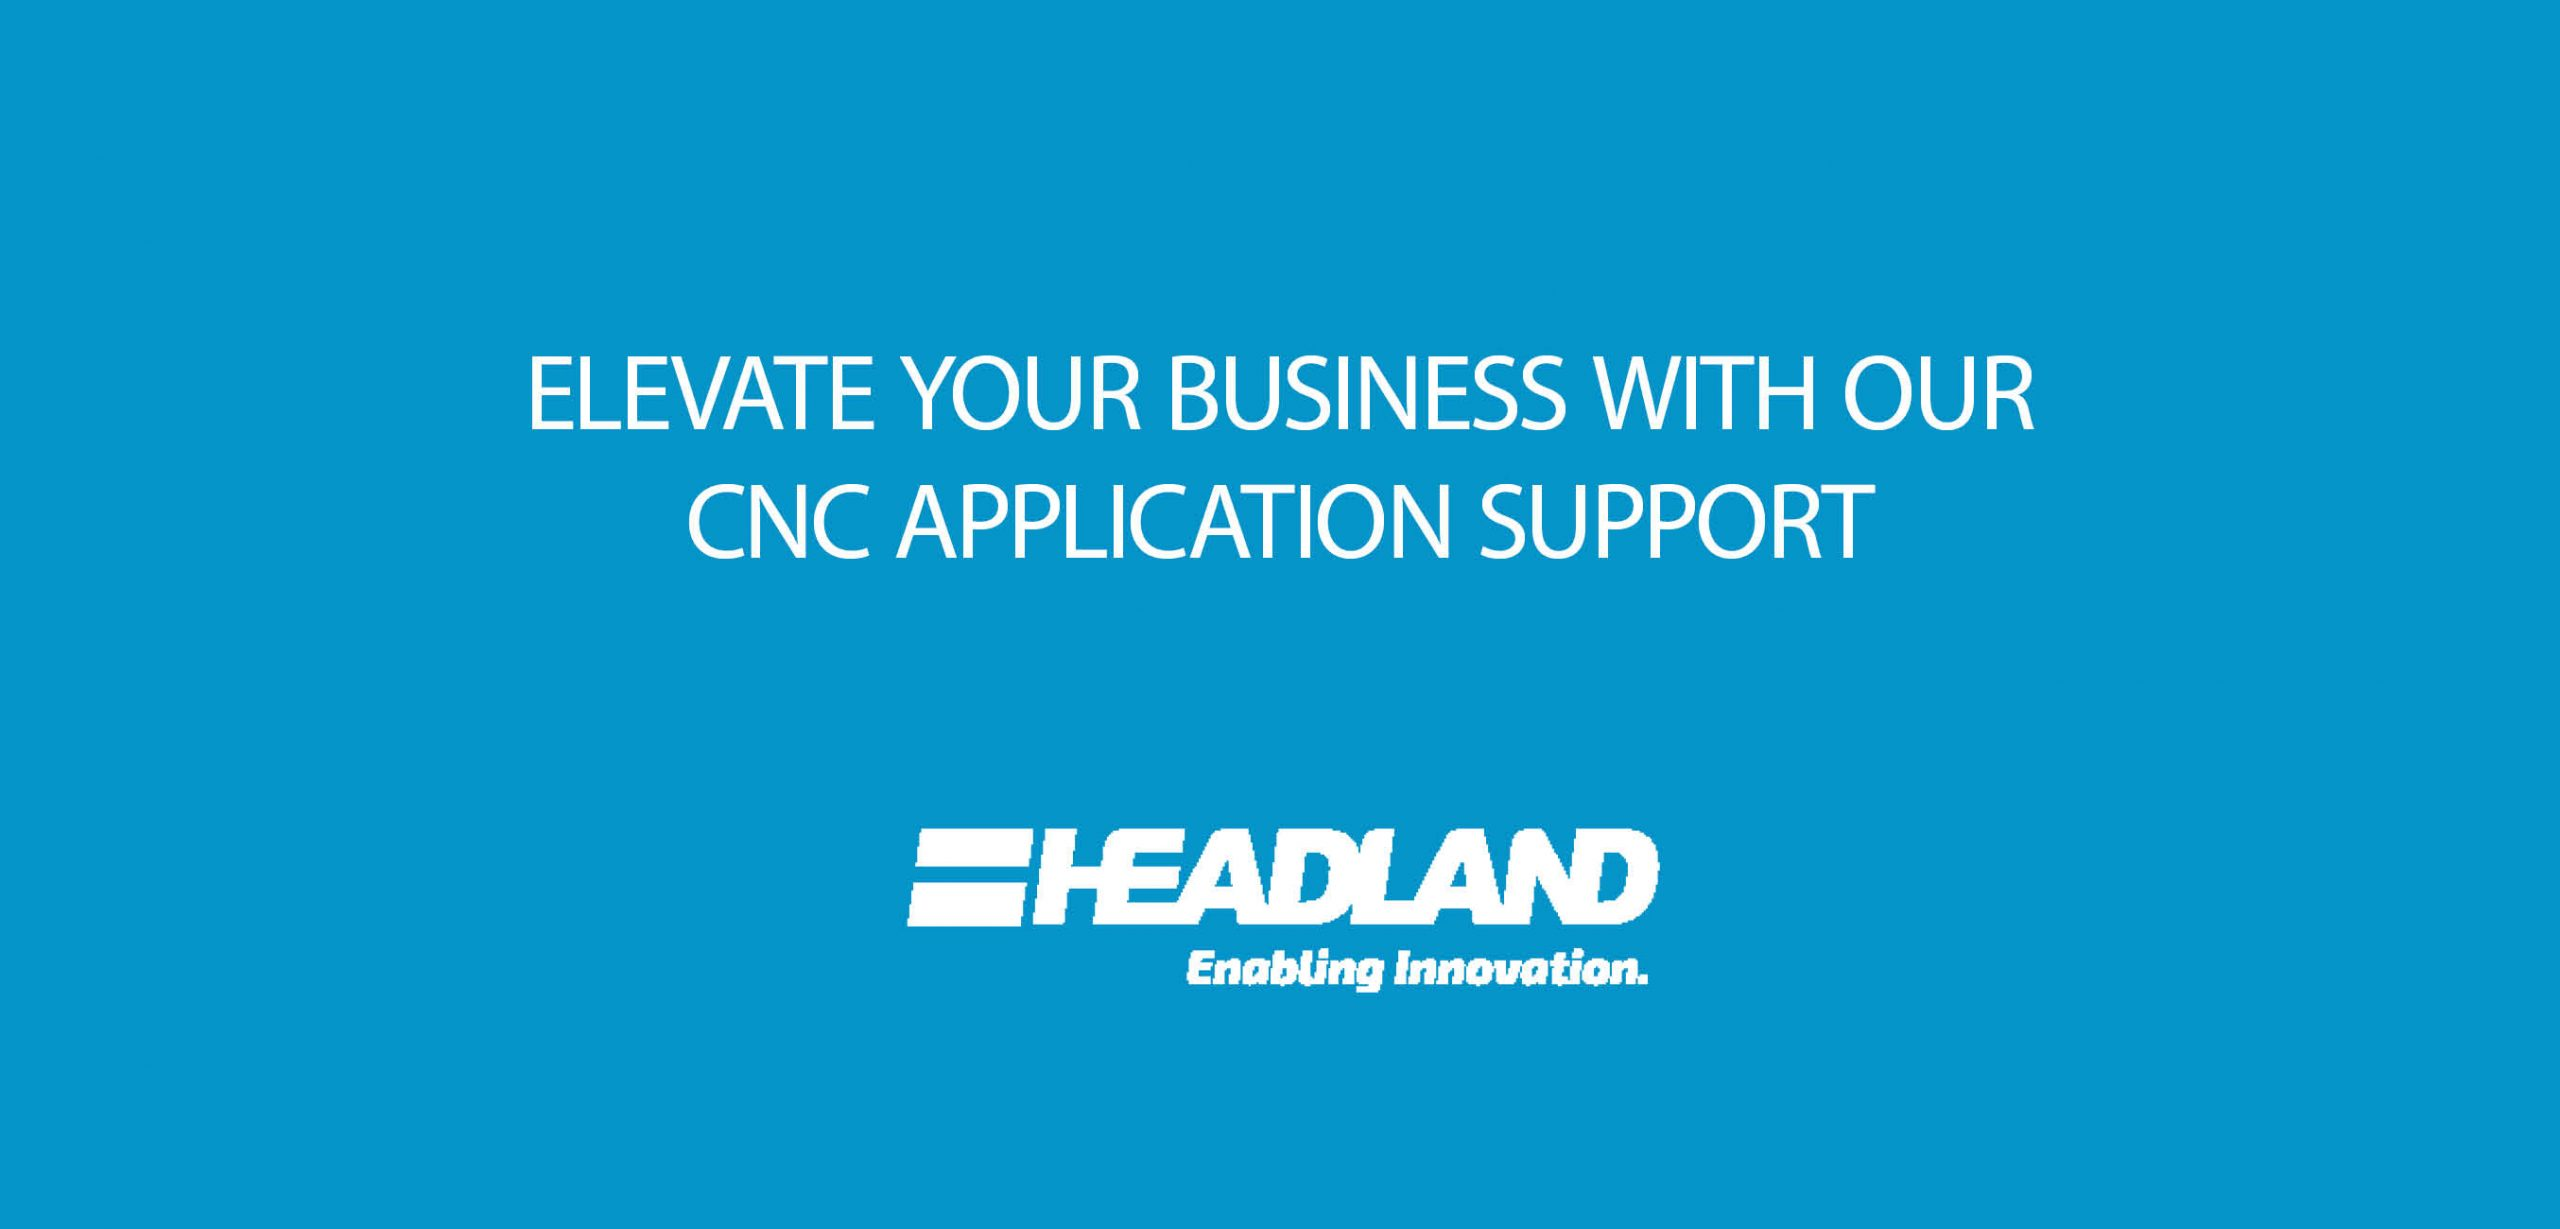 CNC Application Support